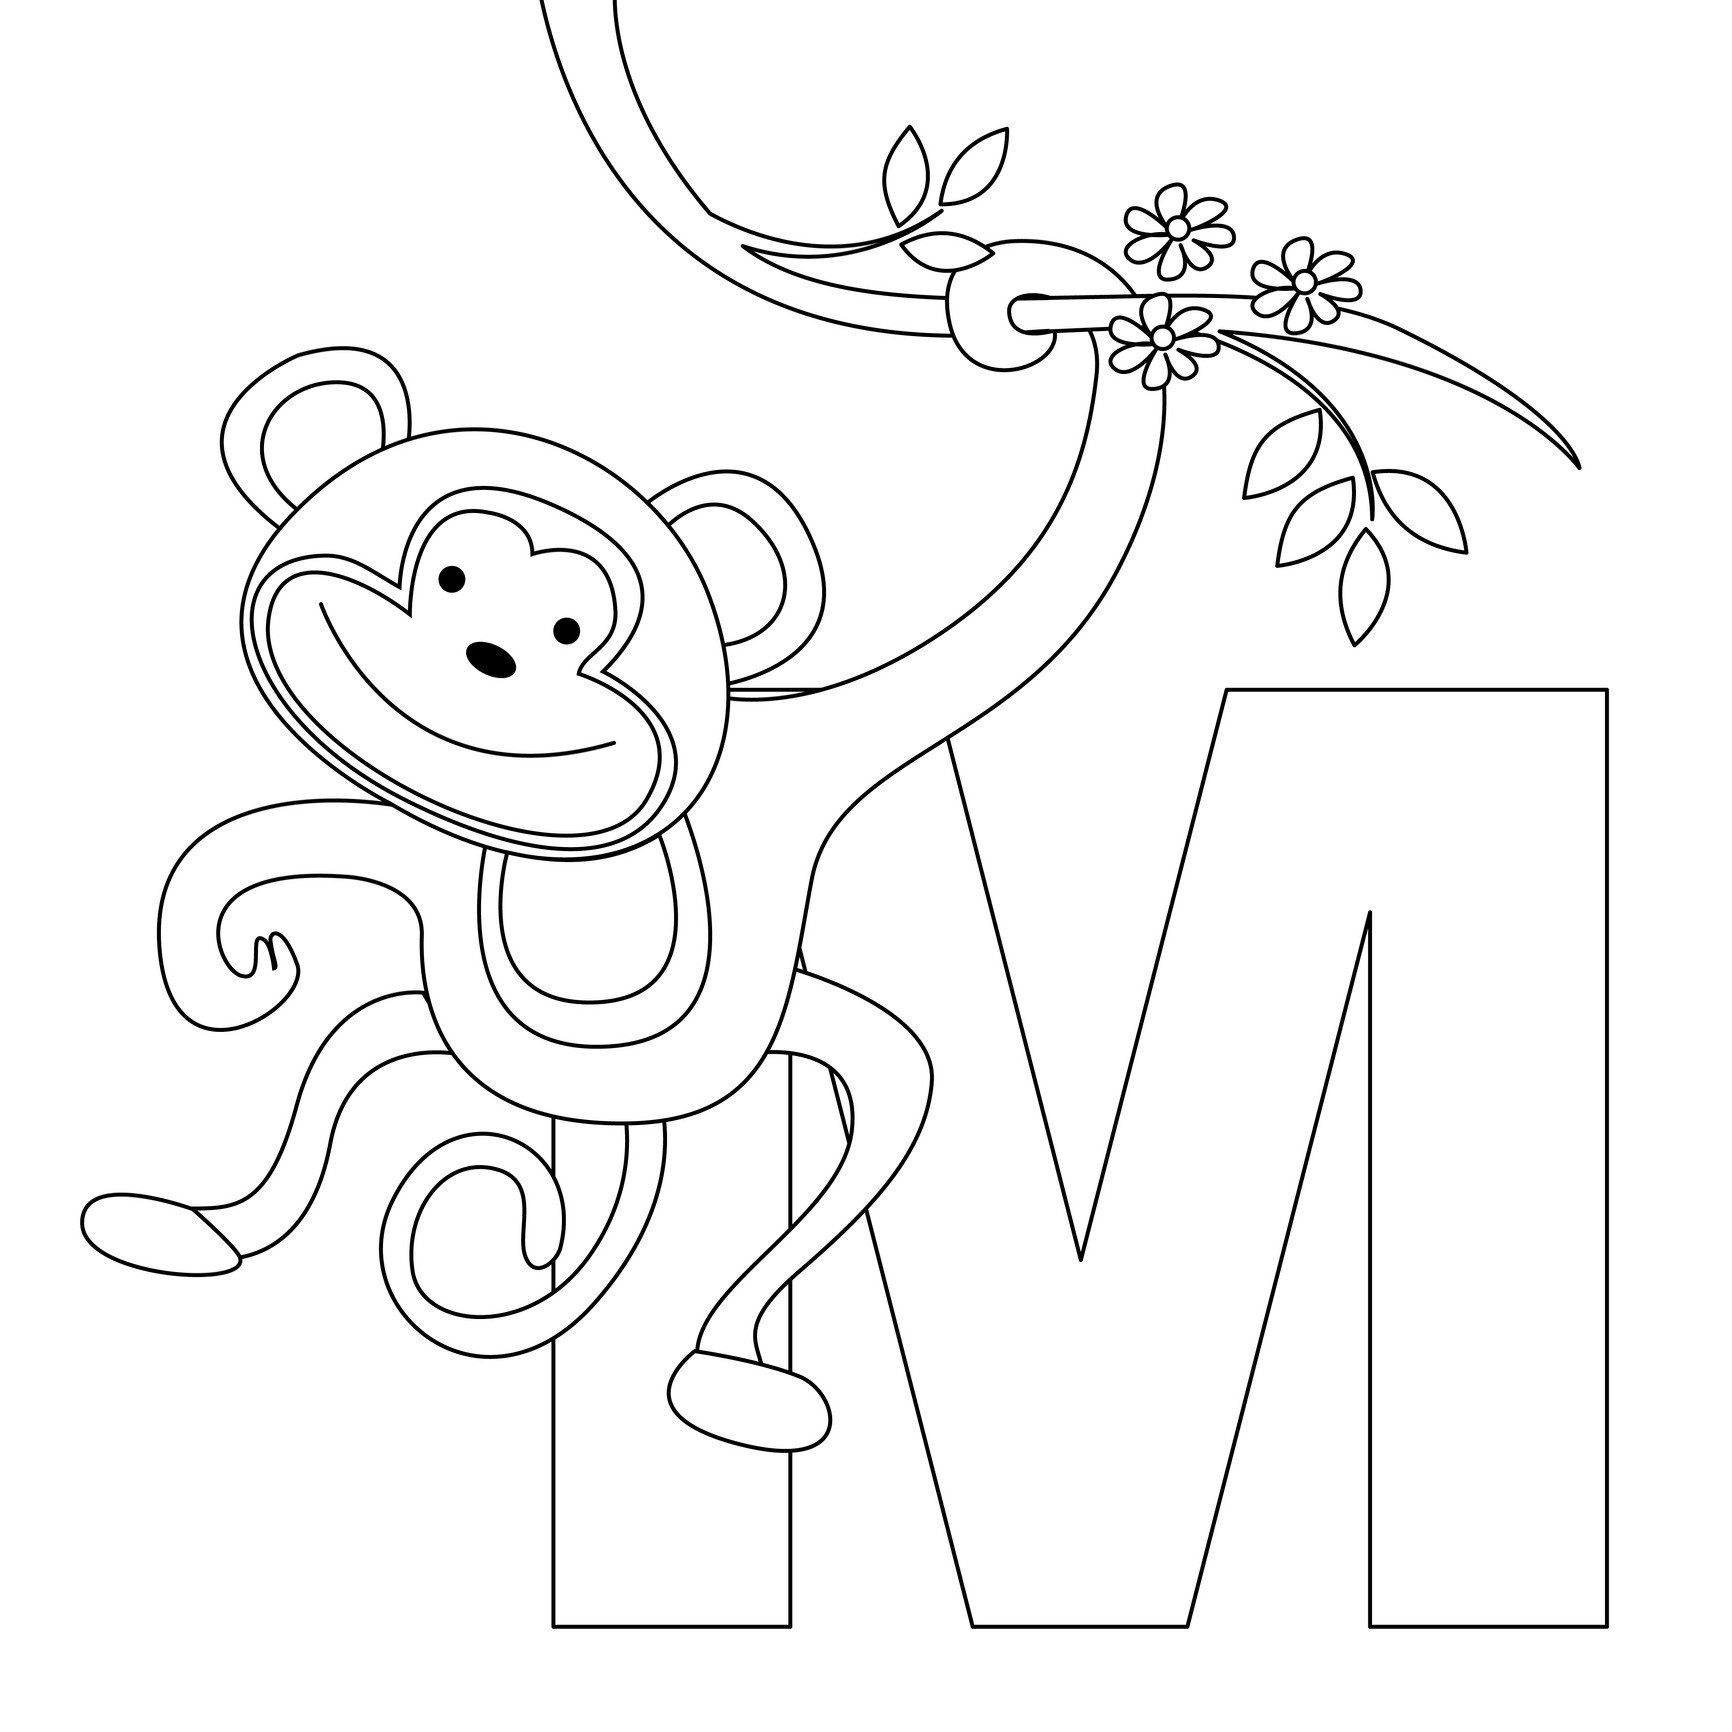 Monkey Coloring Pages for Preschoolers  Printable 10t - Save it to your computer